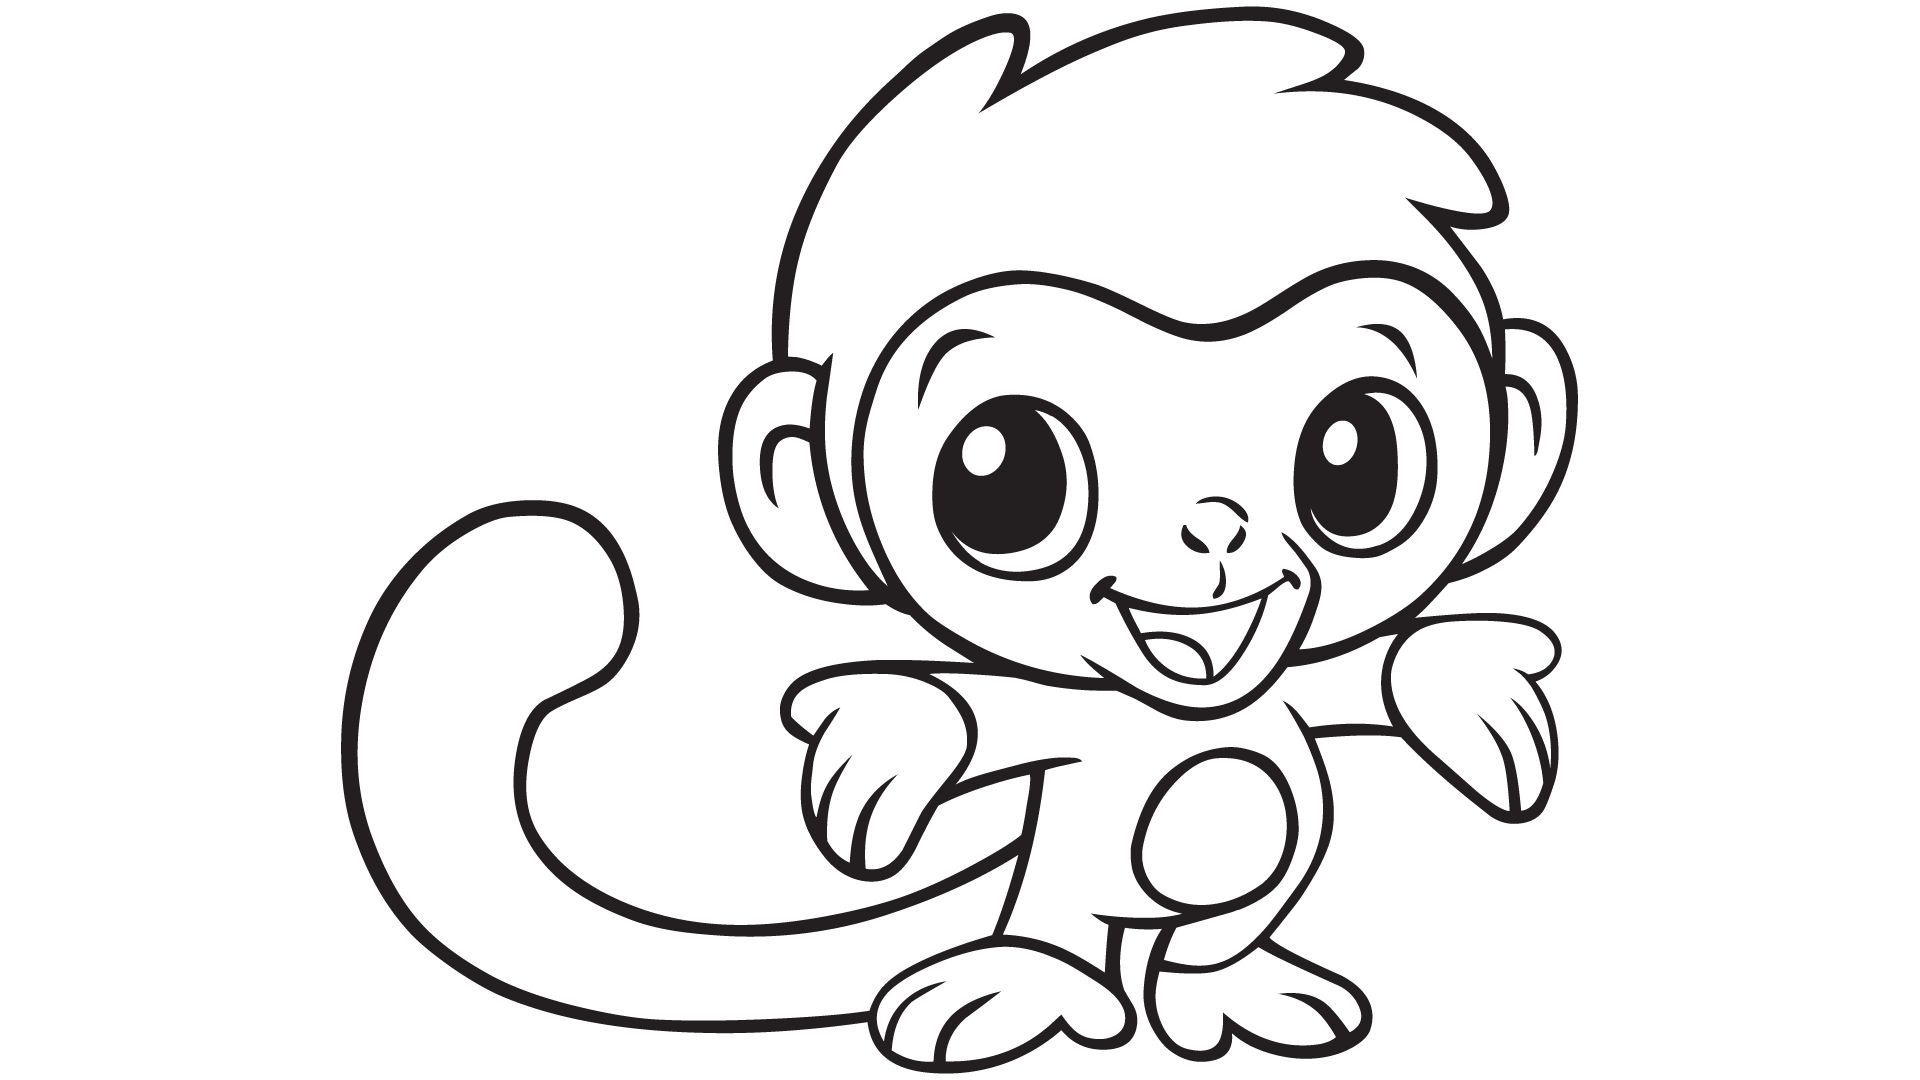 baby monkey coloring pages Baby monkey coloring printable | E.V.A | Animal coloring pages  baby monkey coloring pages